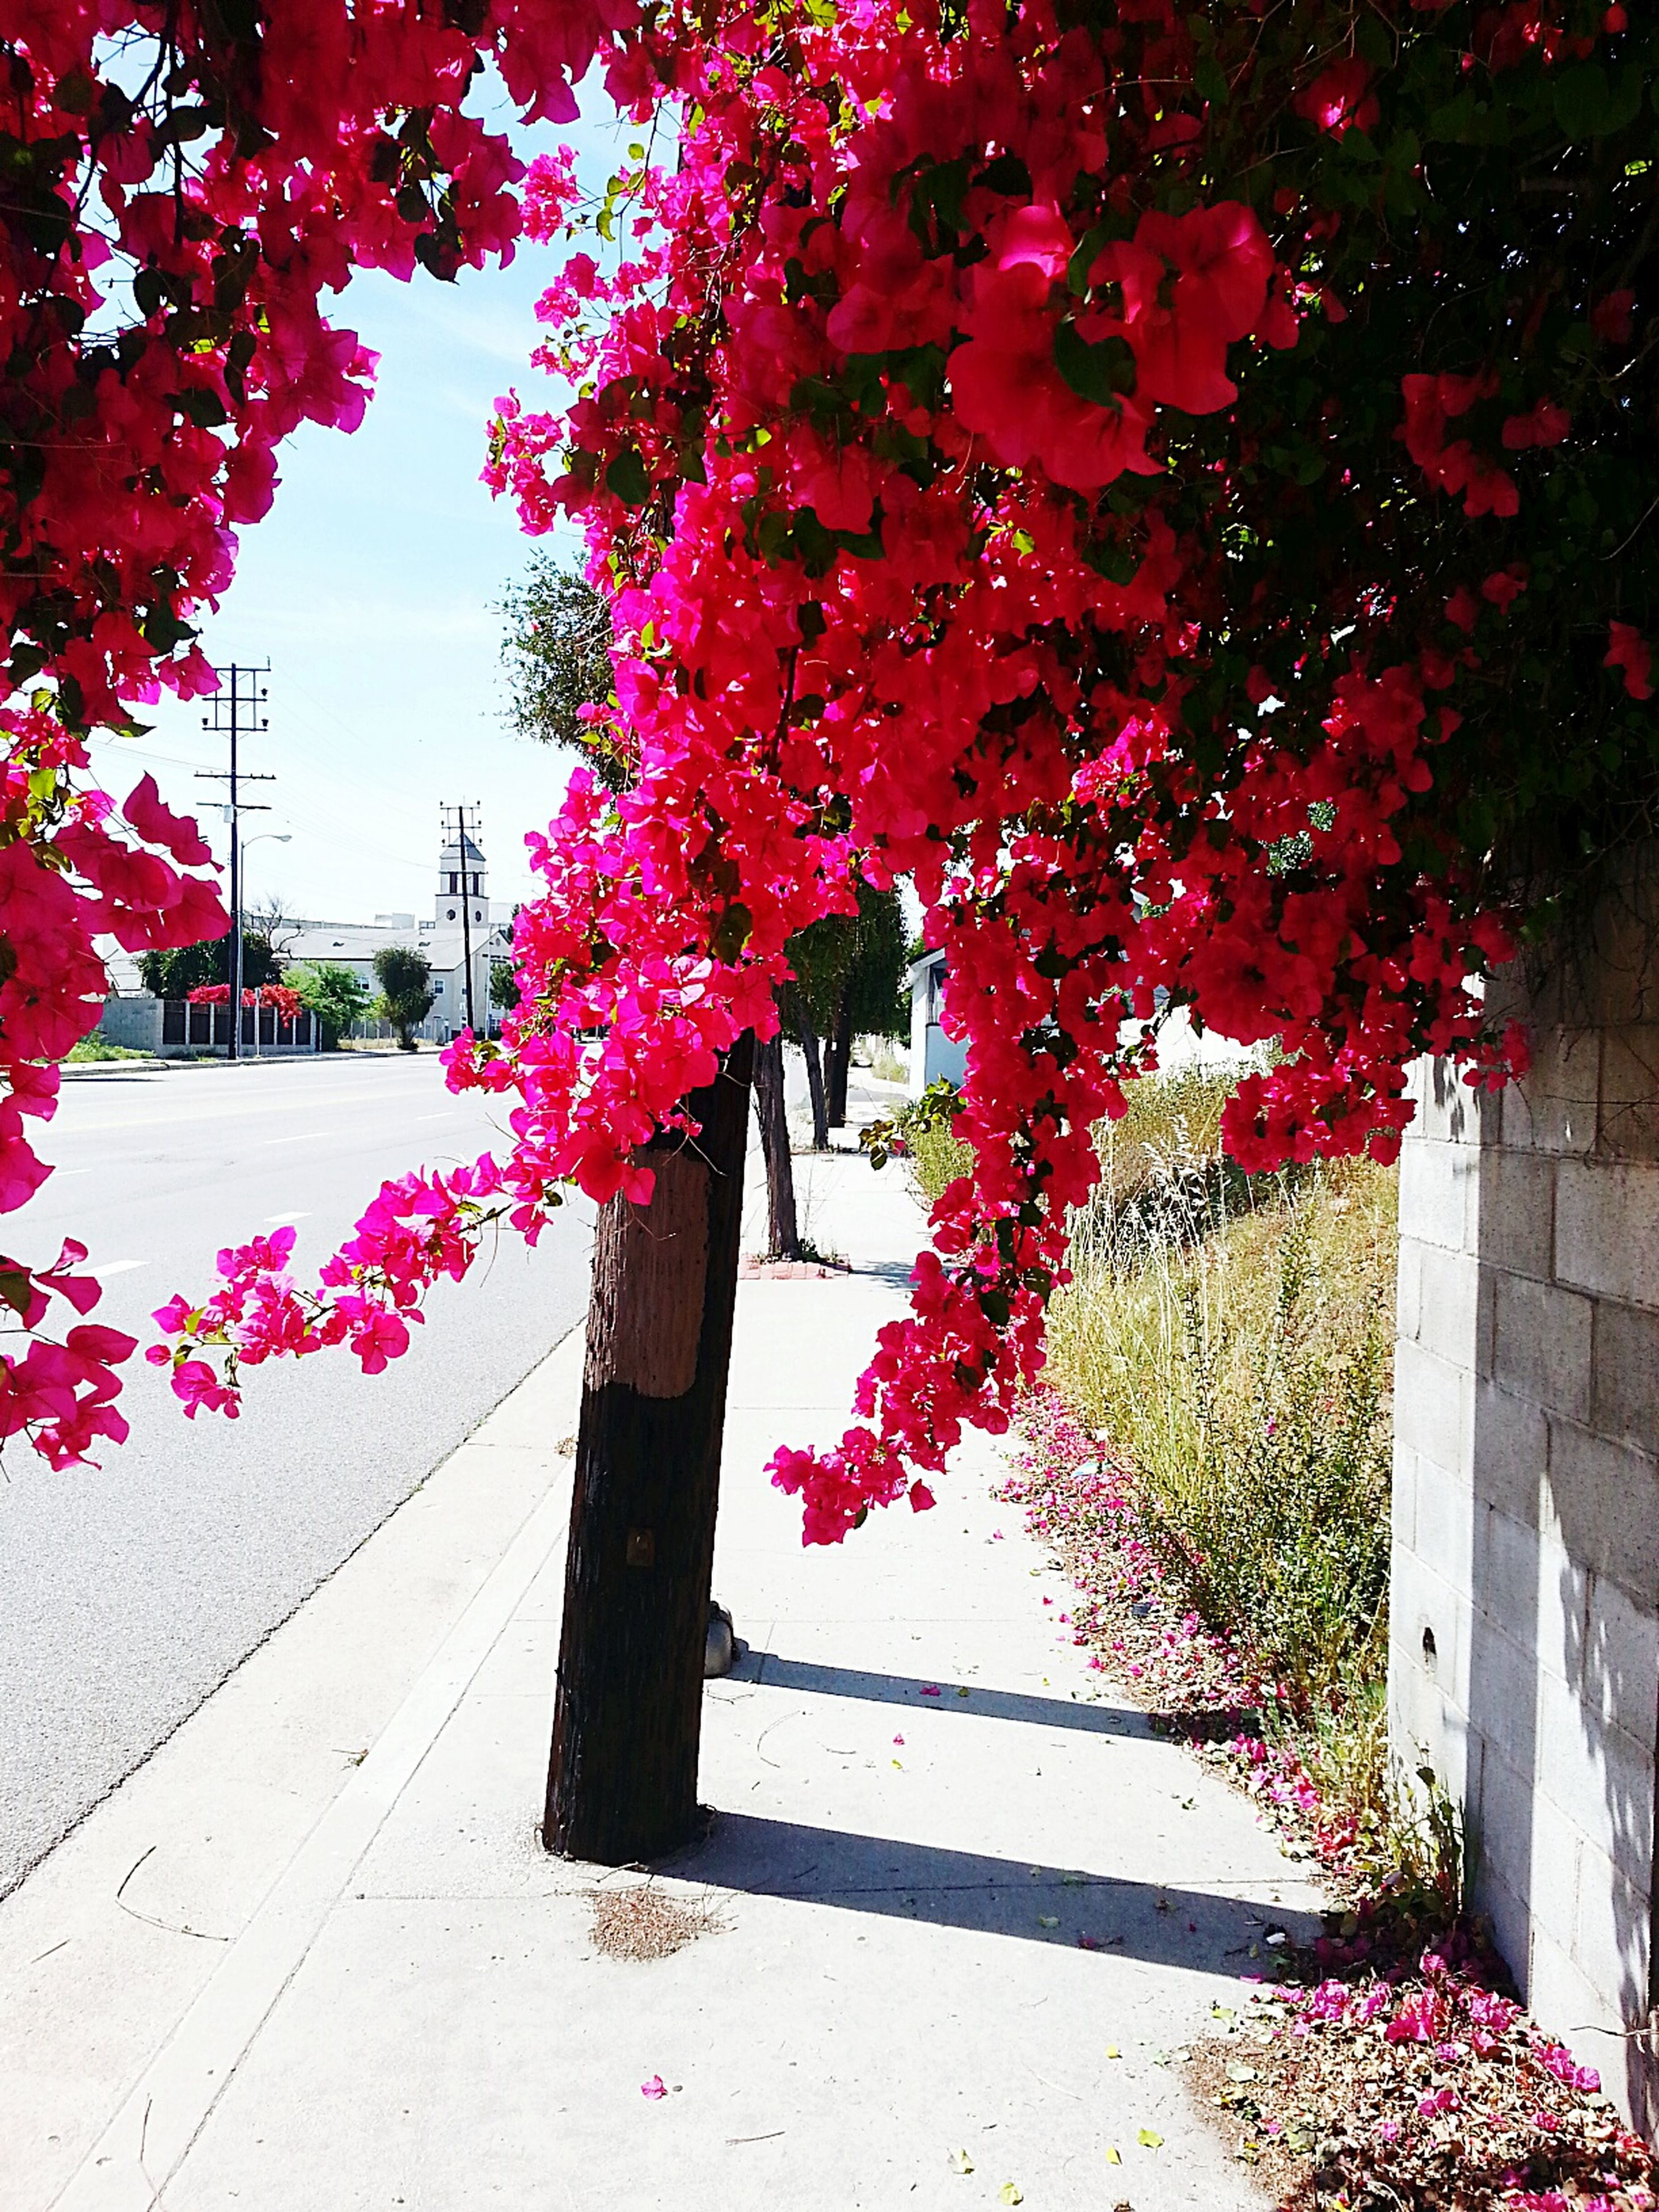 tree, flower, growth, pink color, branch, nature, building exterior, red, freshness, built structure, architecture, plant, beauty in nature, leaf, sunlight, park - man made space, outdoors, season, blossom, day